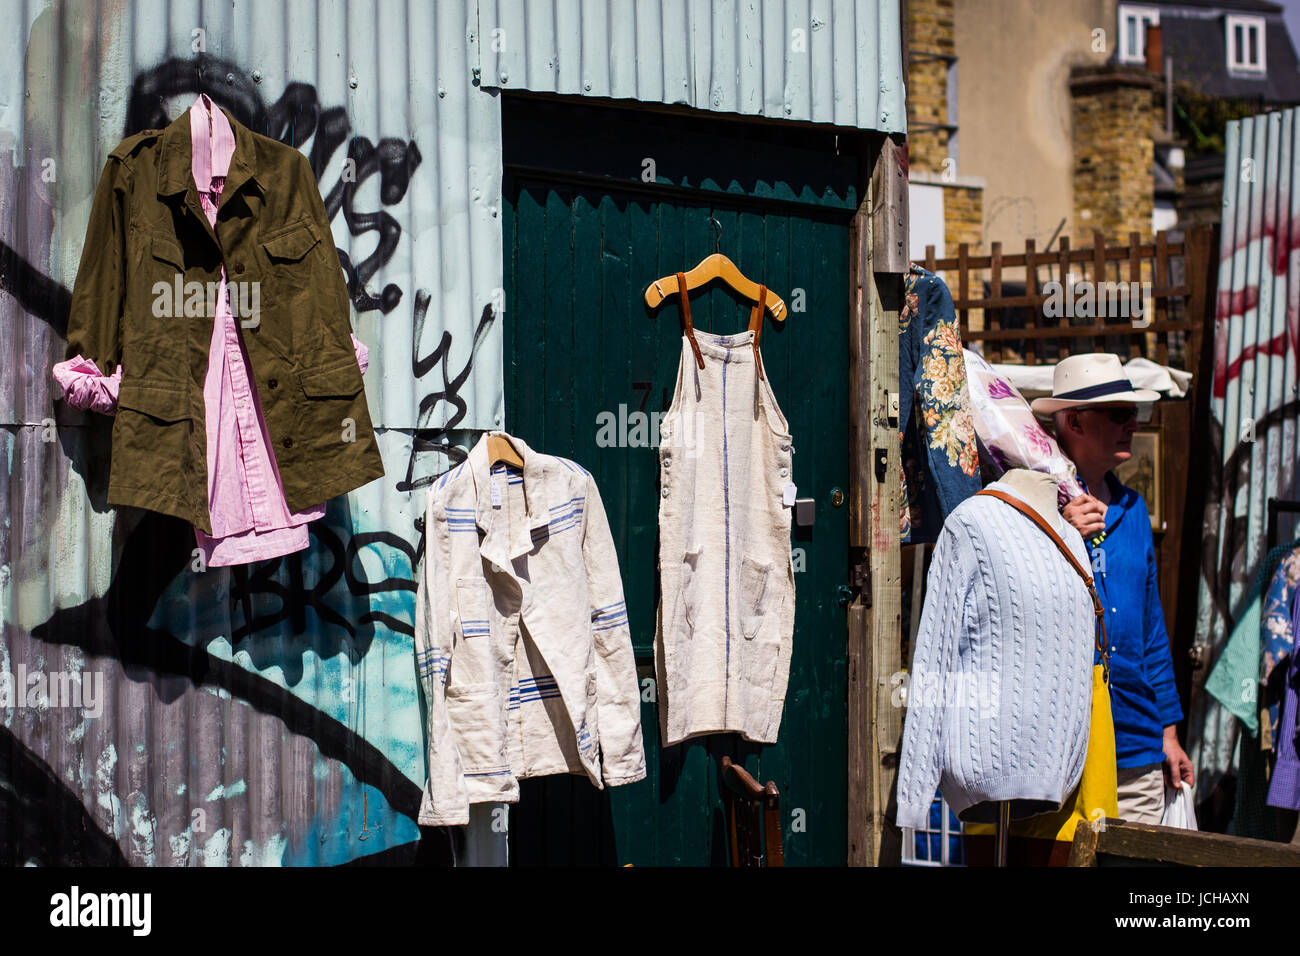 Vintage and secondhand clothes and objects jostle for space athe Columbia Road Flower Market, London - Stock Image